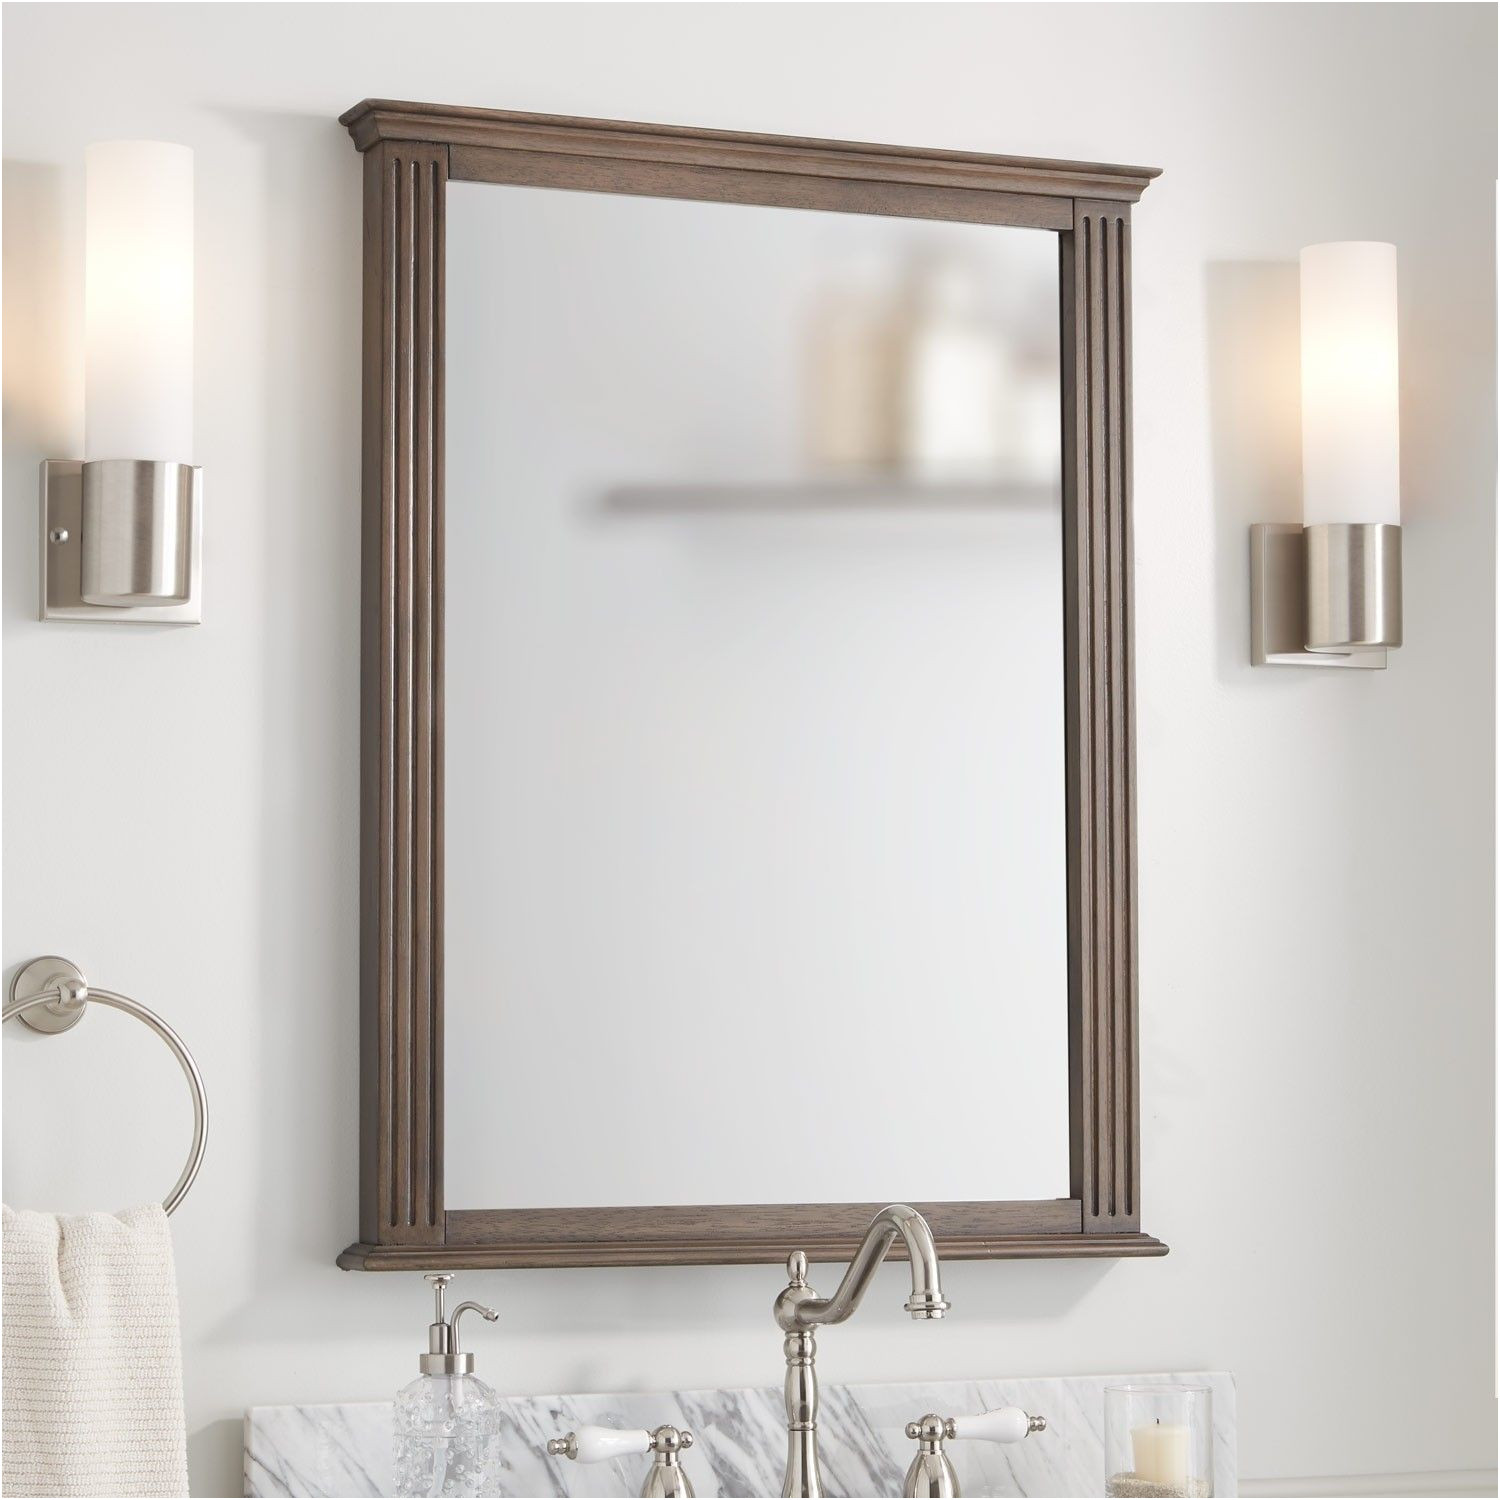 "Tilt Mirrors for Bathroom Rectangular Fresh 24"" Helsinki Rectangular Tilting Mirror Bathroom Mirrors"